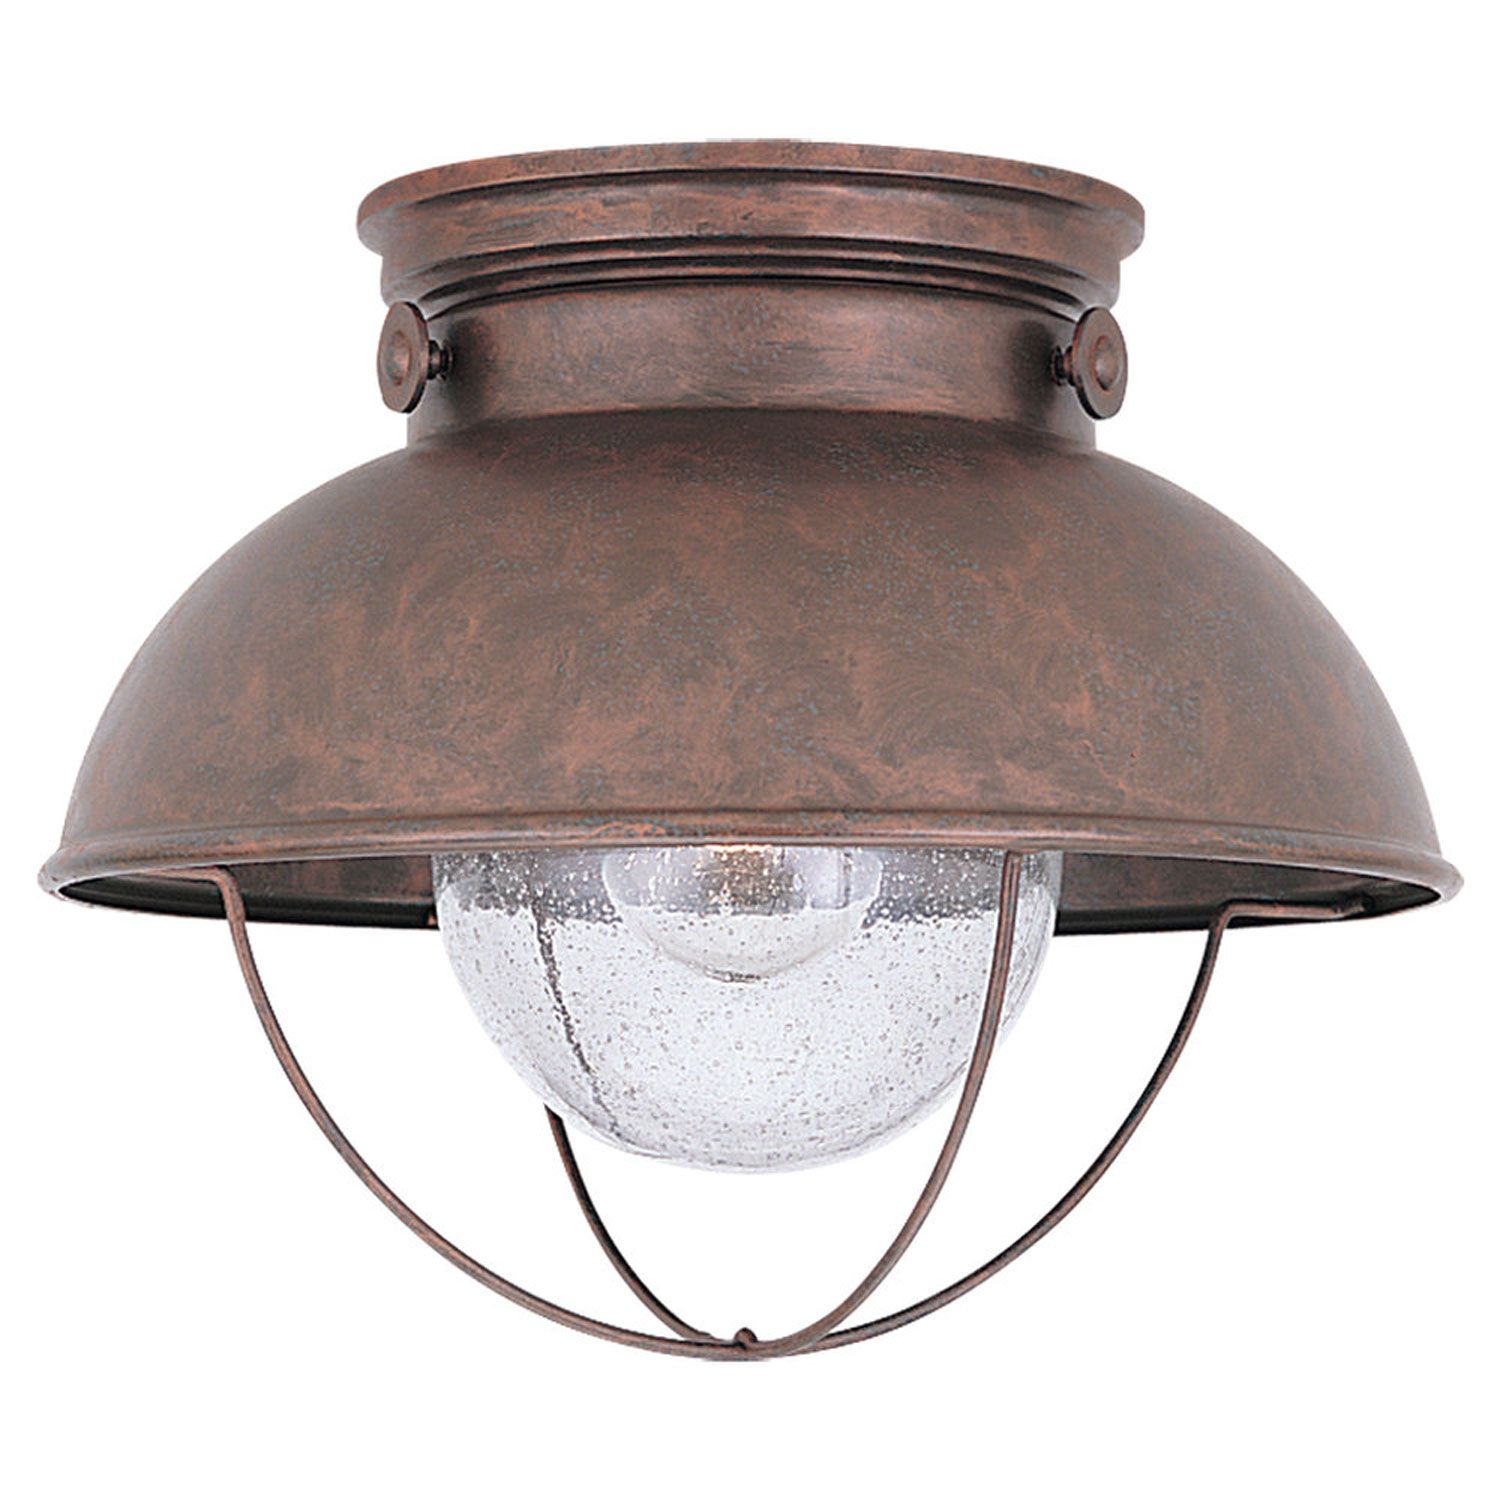 Exceptional Sebring Weathered Copper Outdoor Ceiling Light Sea Gull Lighting Flush  Mount Outdoor Ceili